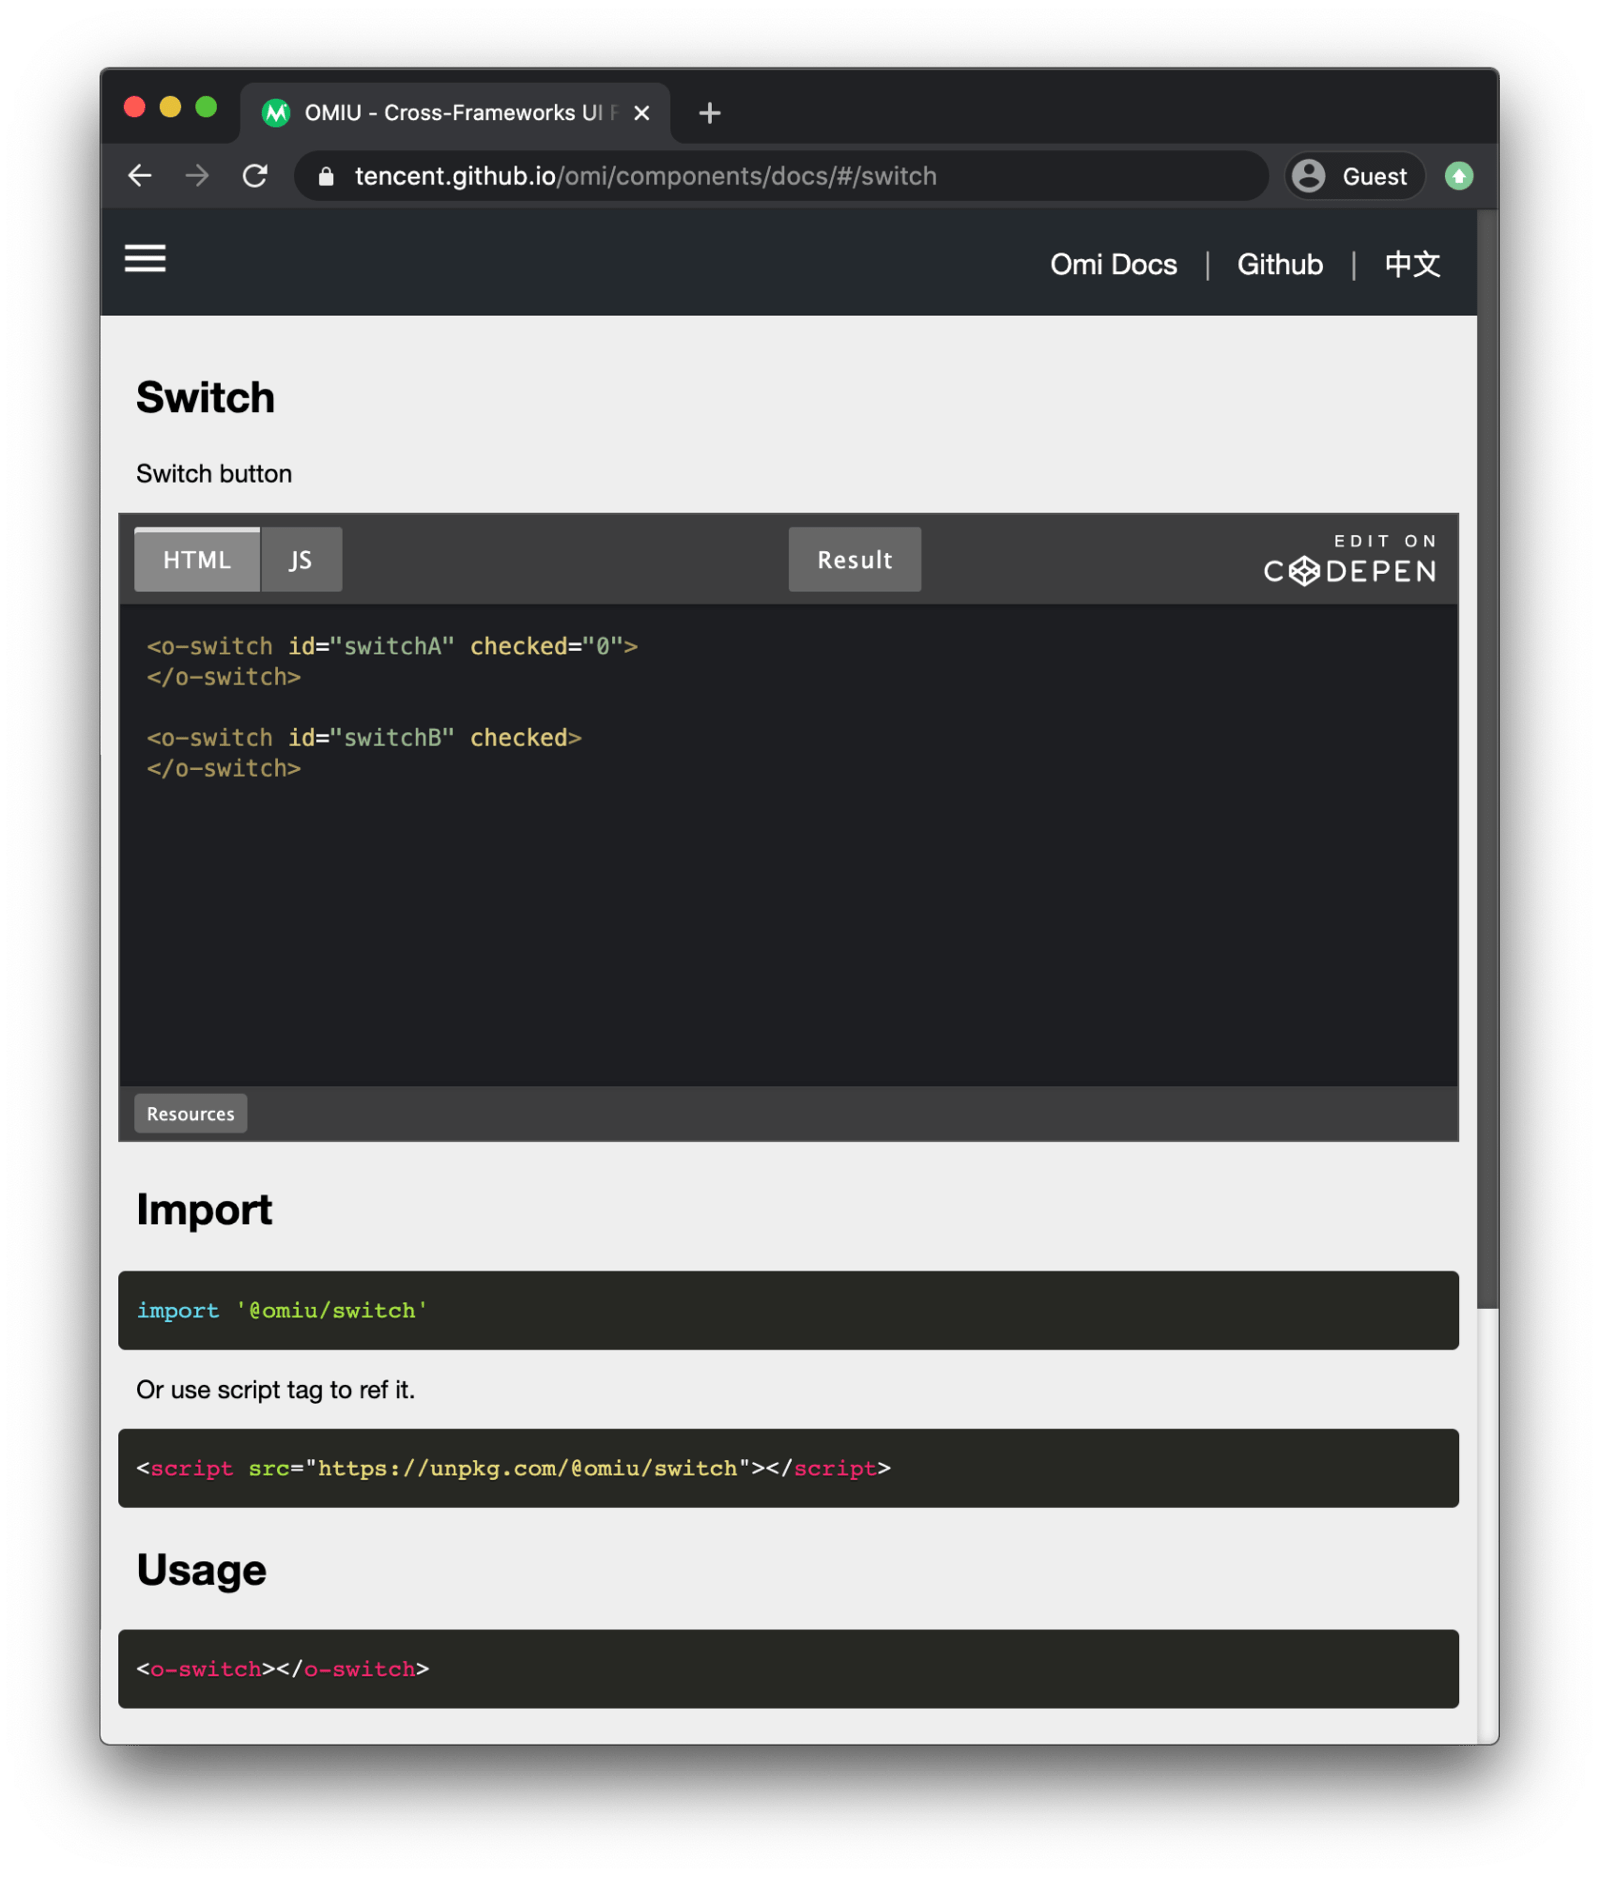 Demo of the Omiu framework showing form-related components, namely switches.